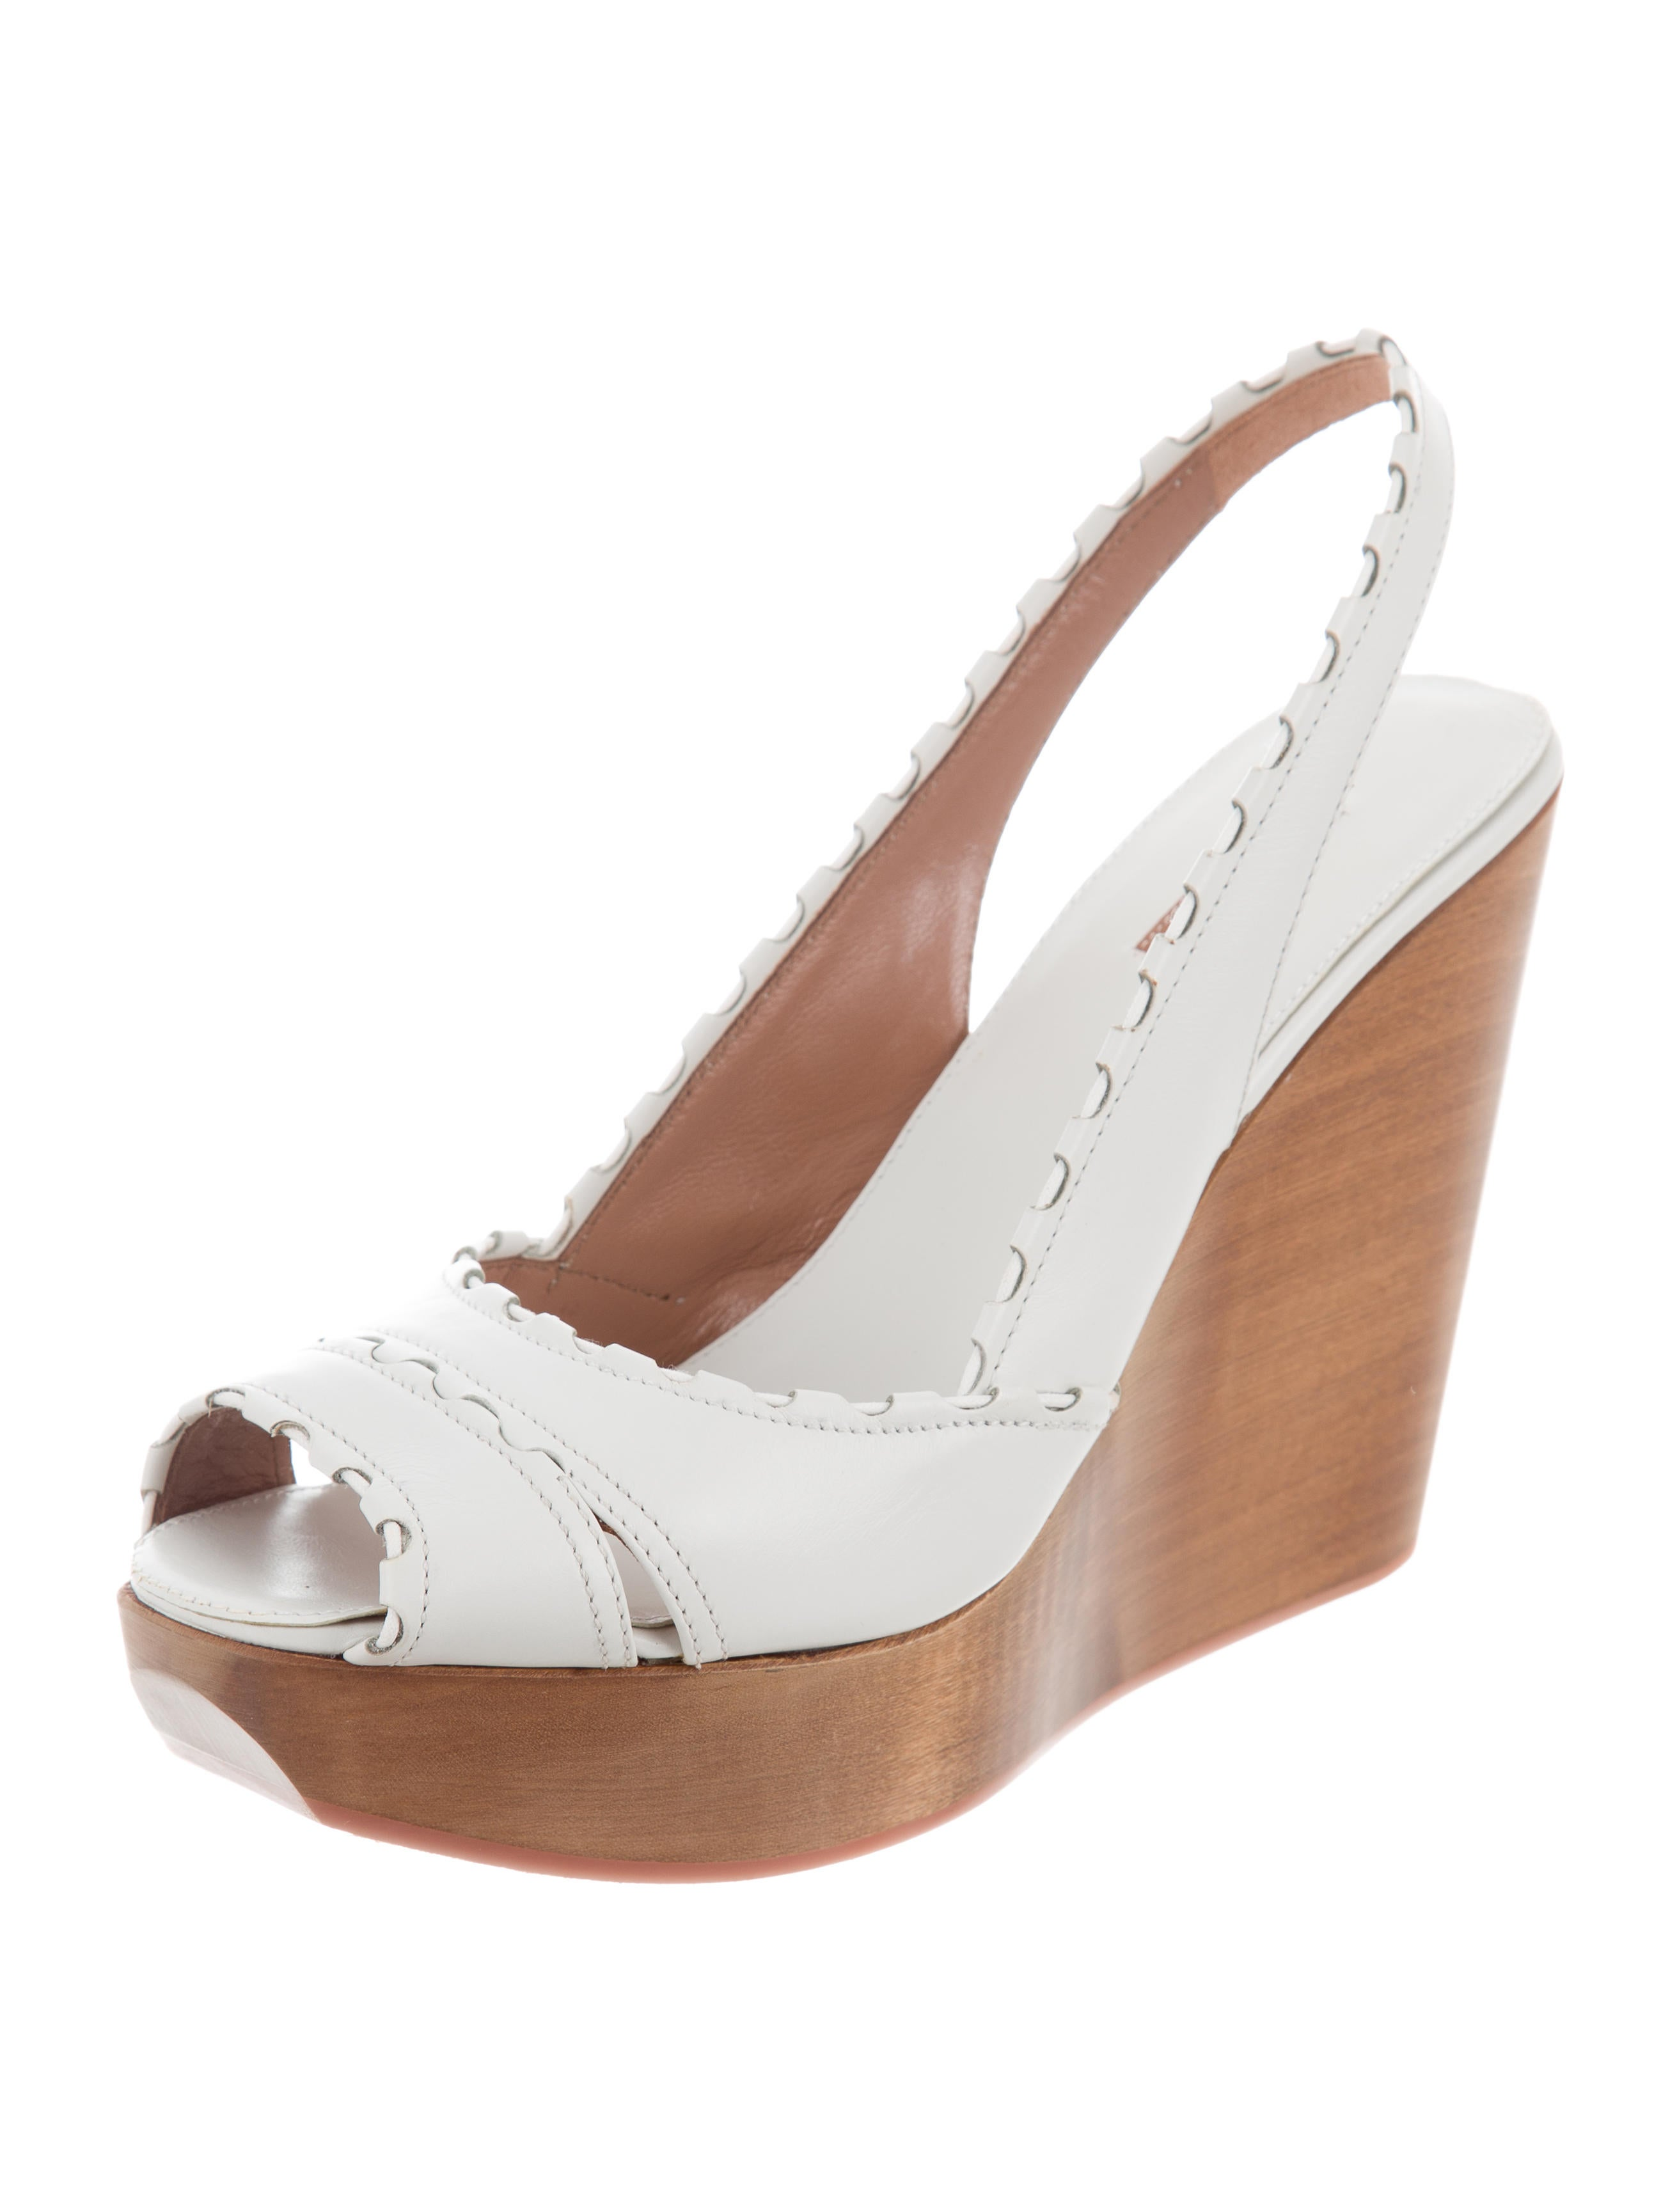 cheapest price sale 2014 new Alaïa Leather Slingback Wedges w/ Tags buy cheap outlet locations 3QERoy7Q